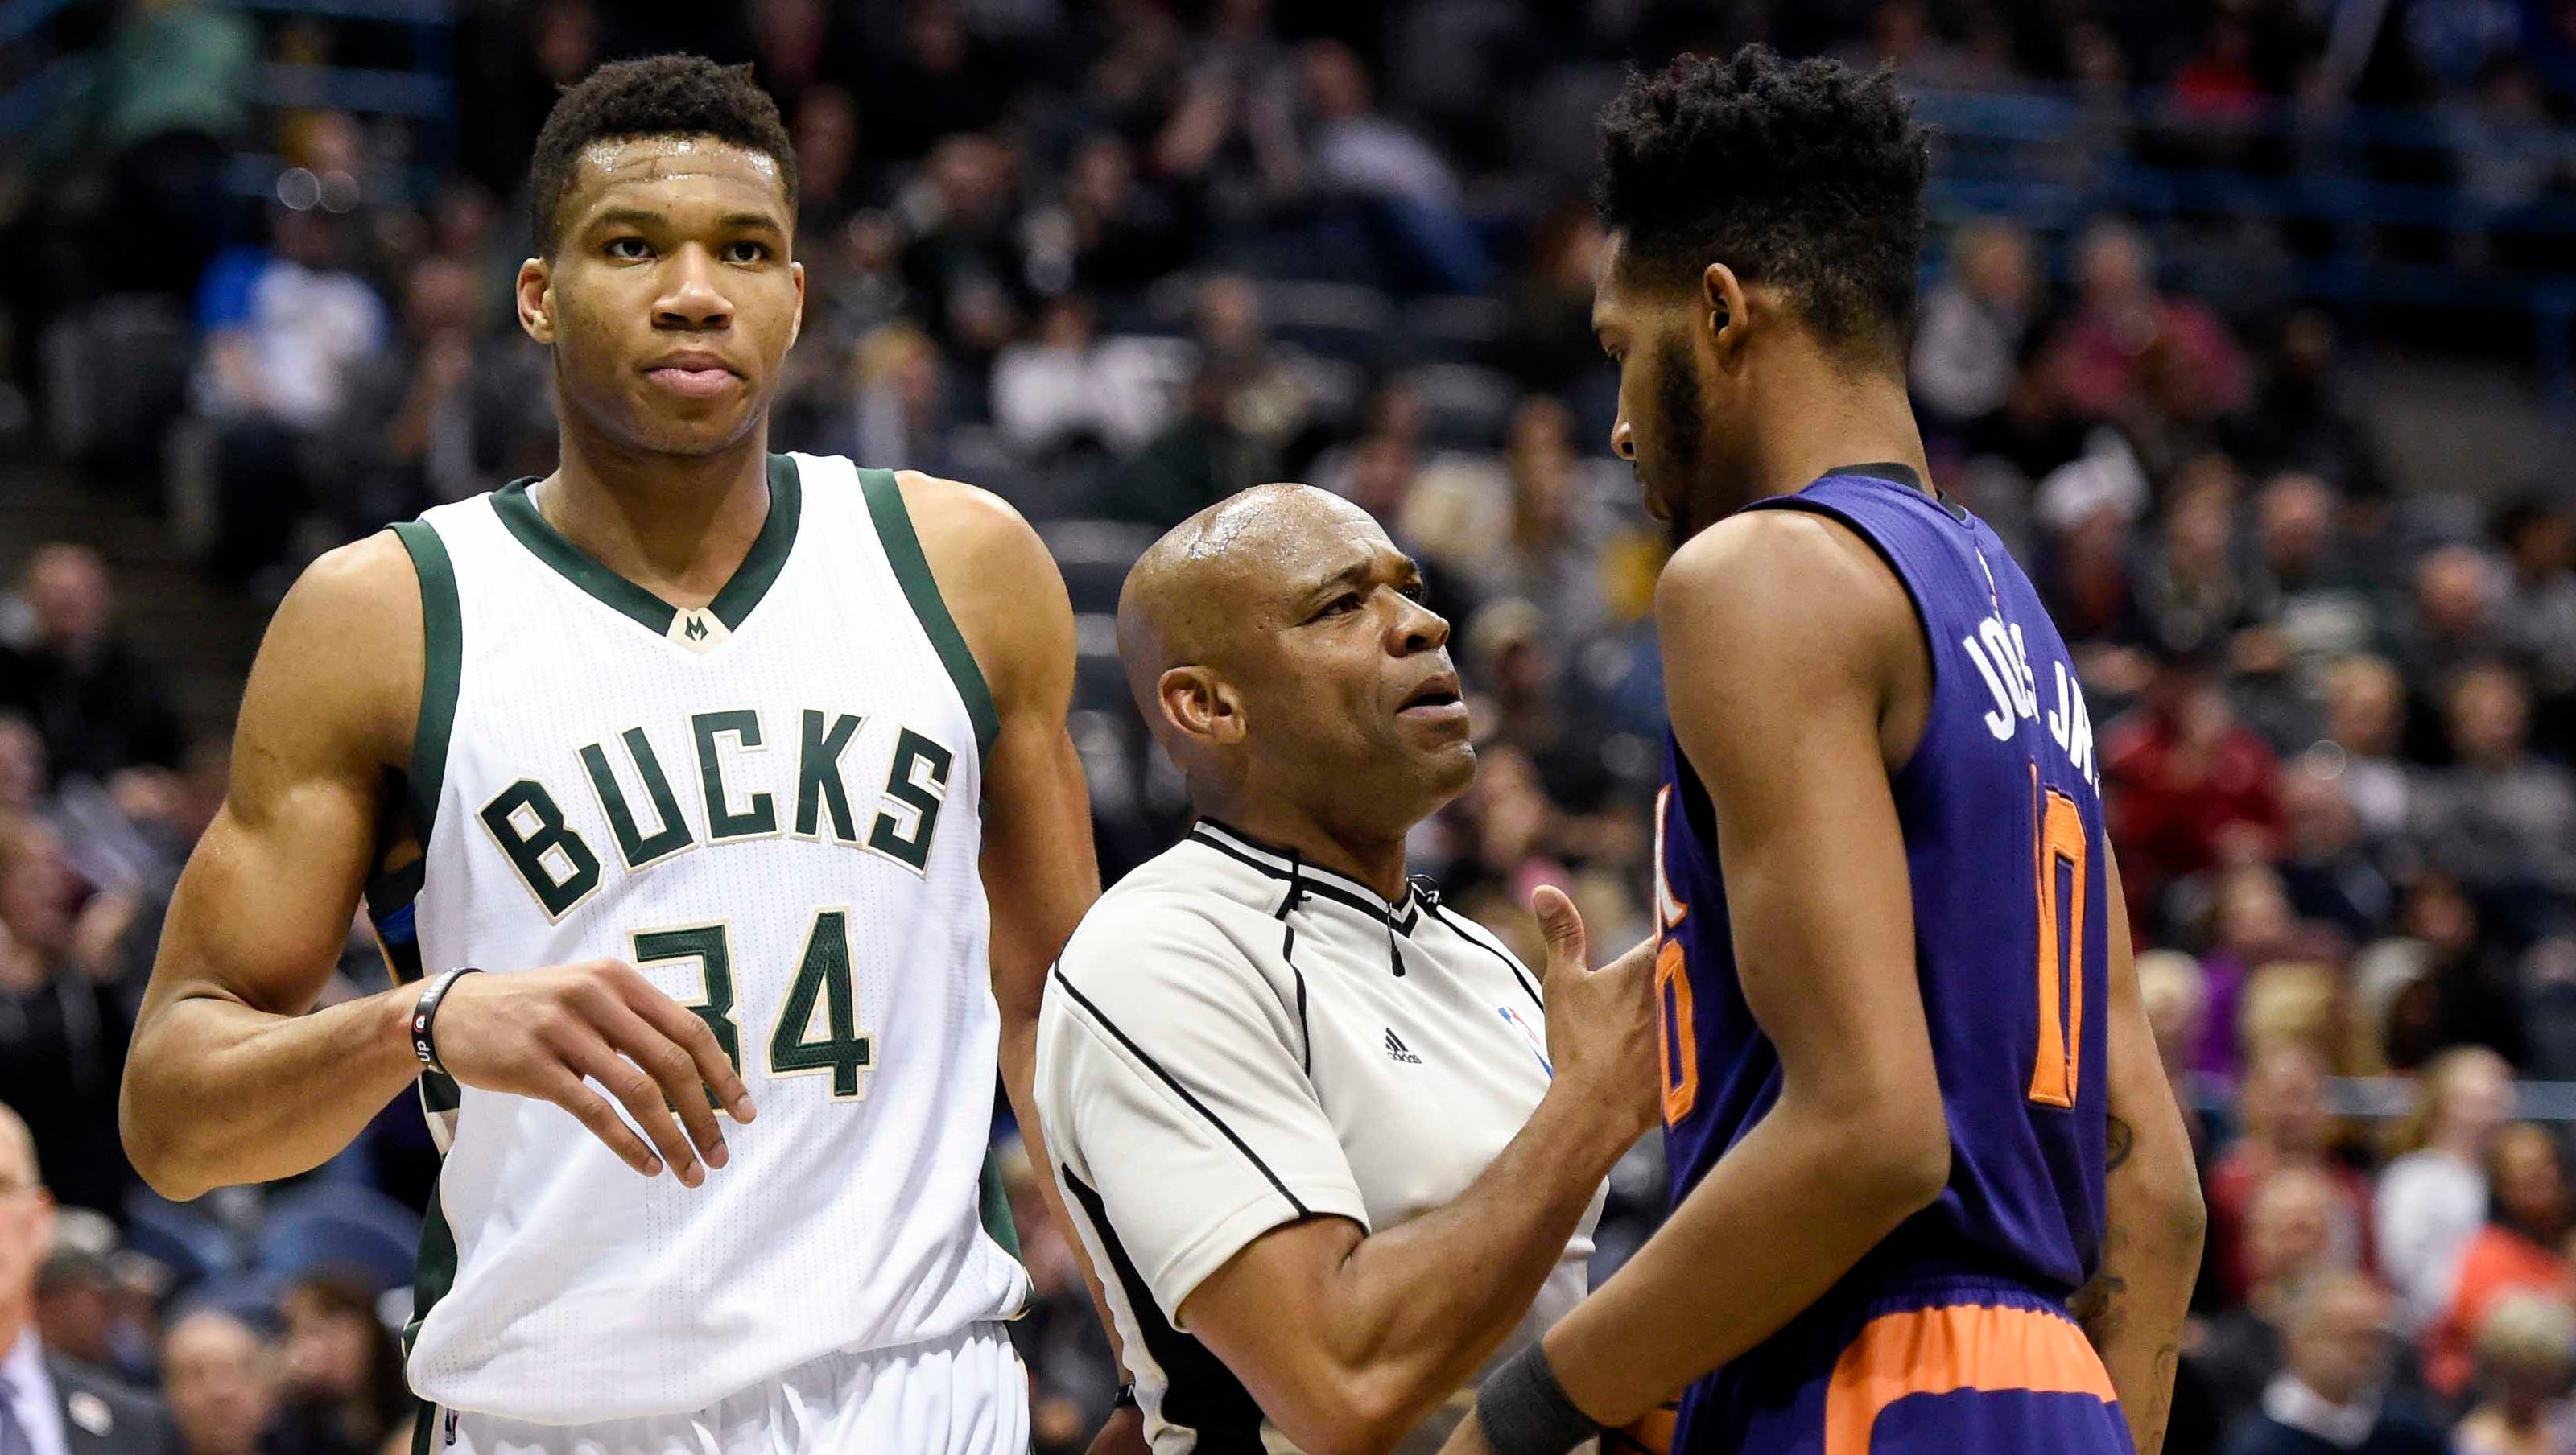 Suns Could Have Had The Bucks Giannis Antetokounmpo